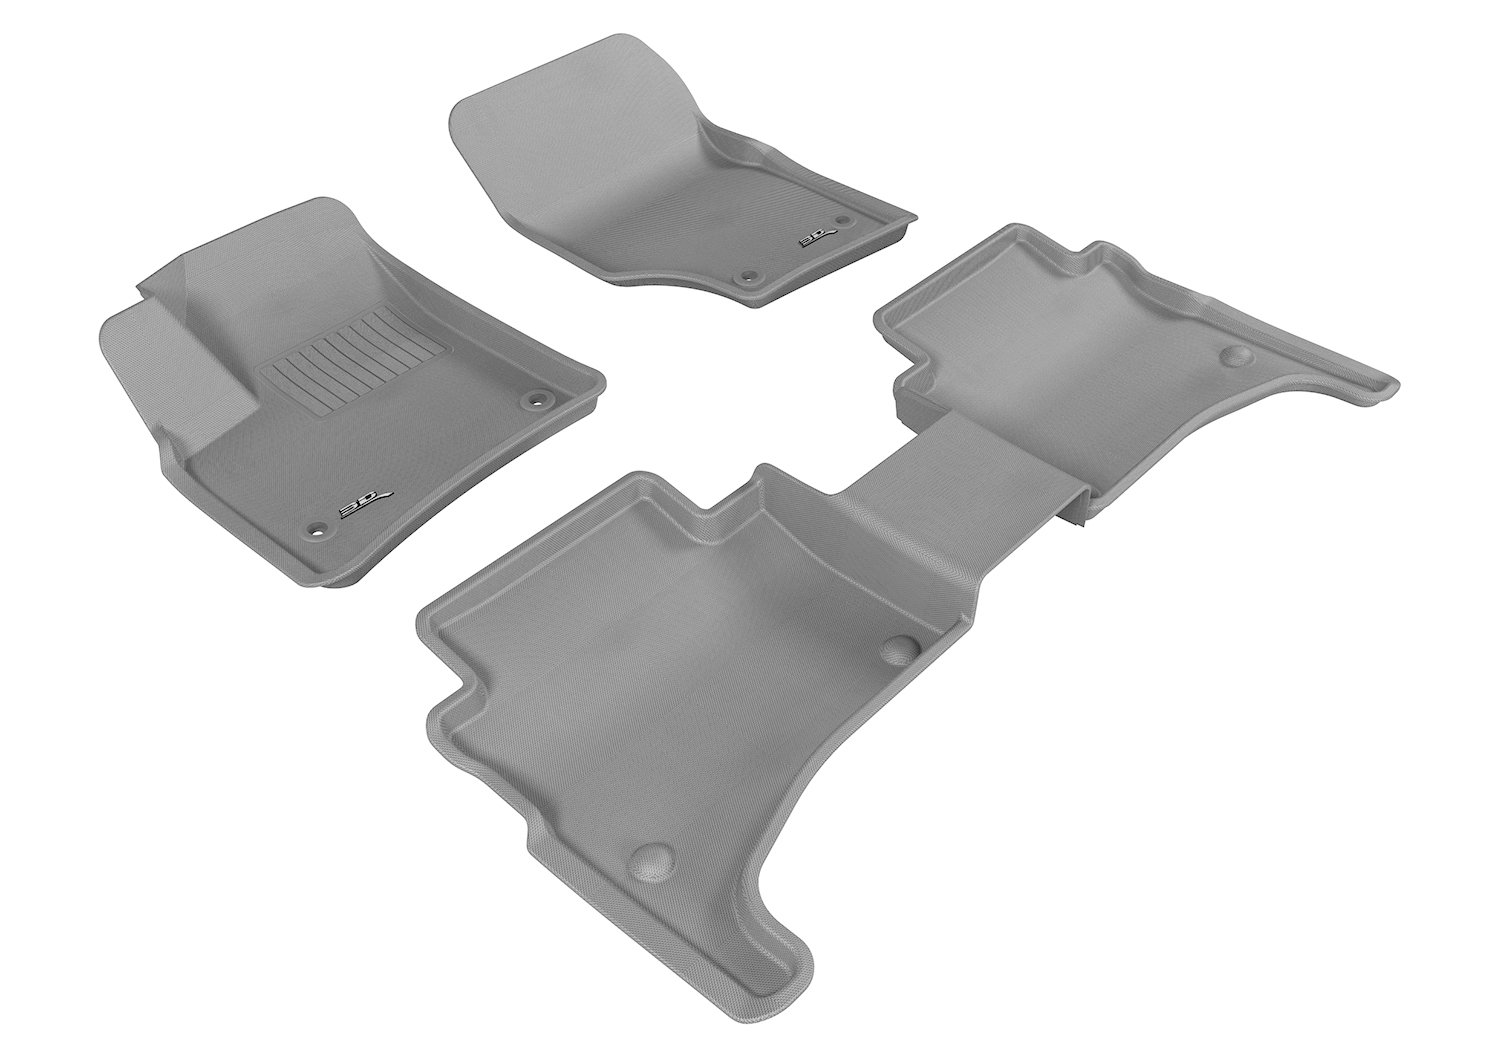 3D MAXpider Complete Set Custom Fit All-Weather Floor Mat for Select Volkswagen Touareg Models Gray L1VW01201501 Kagu Rubber